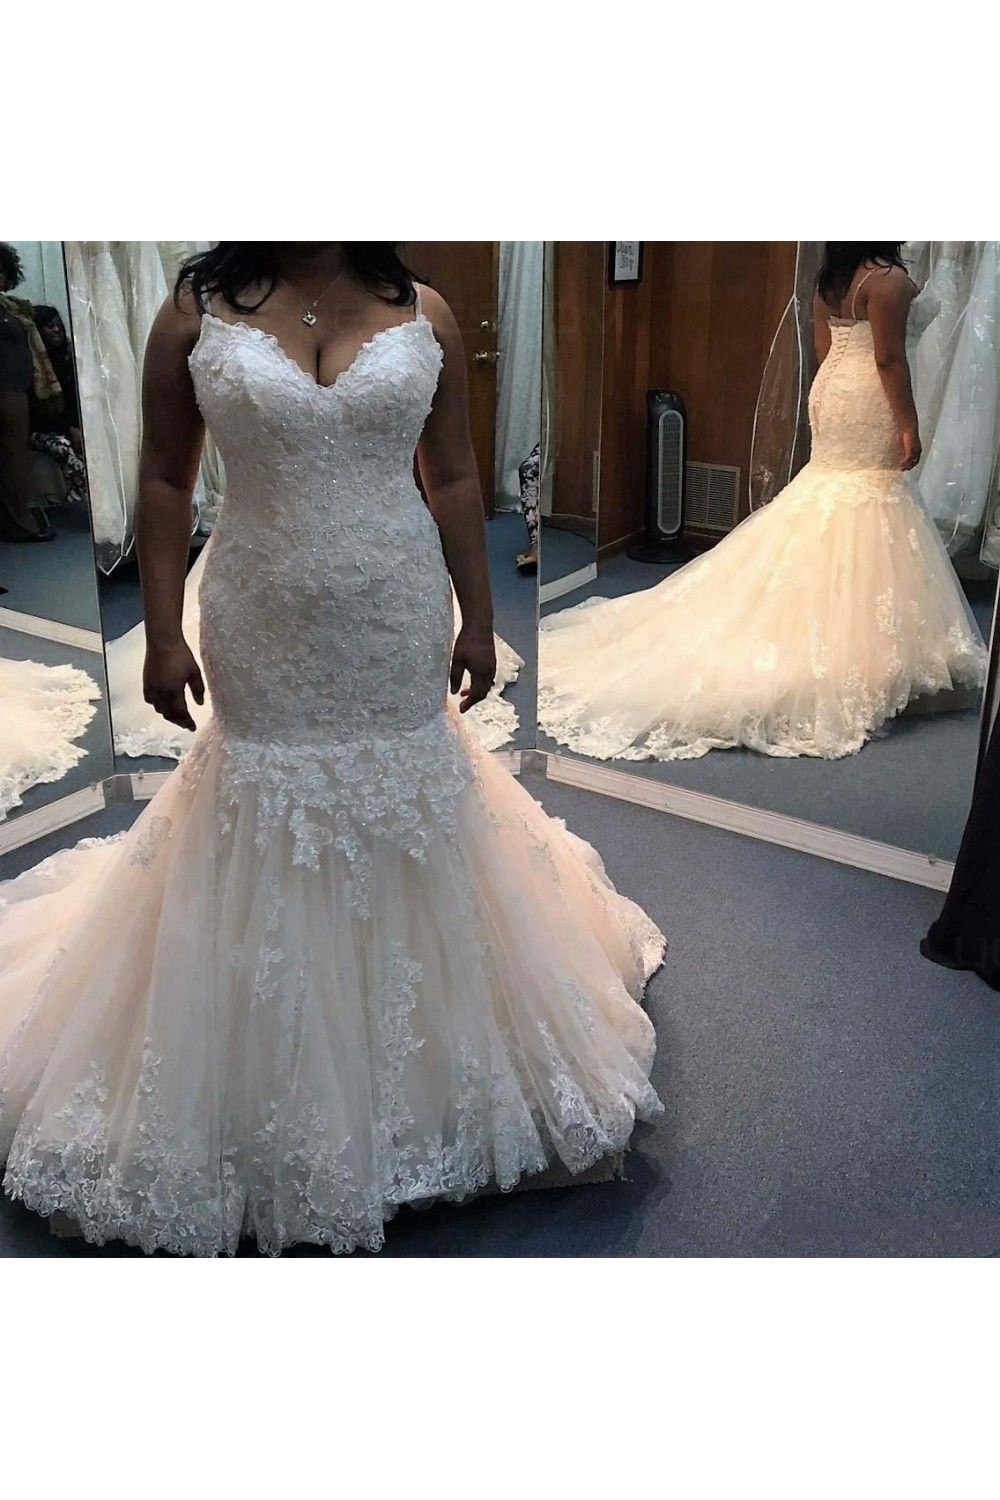 Mermaid sweetheart plus size lace wedding dresses bridal gowns